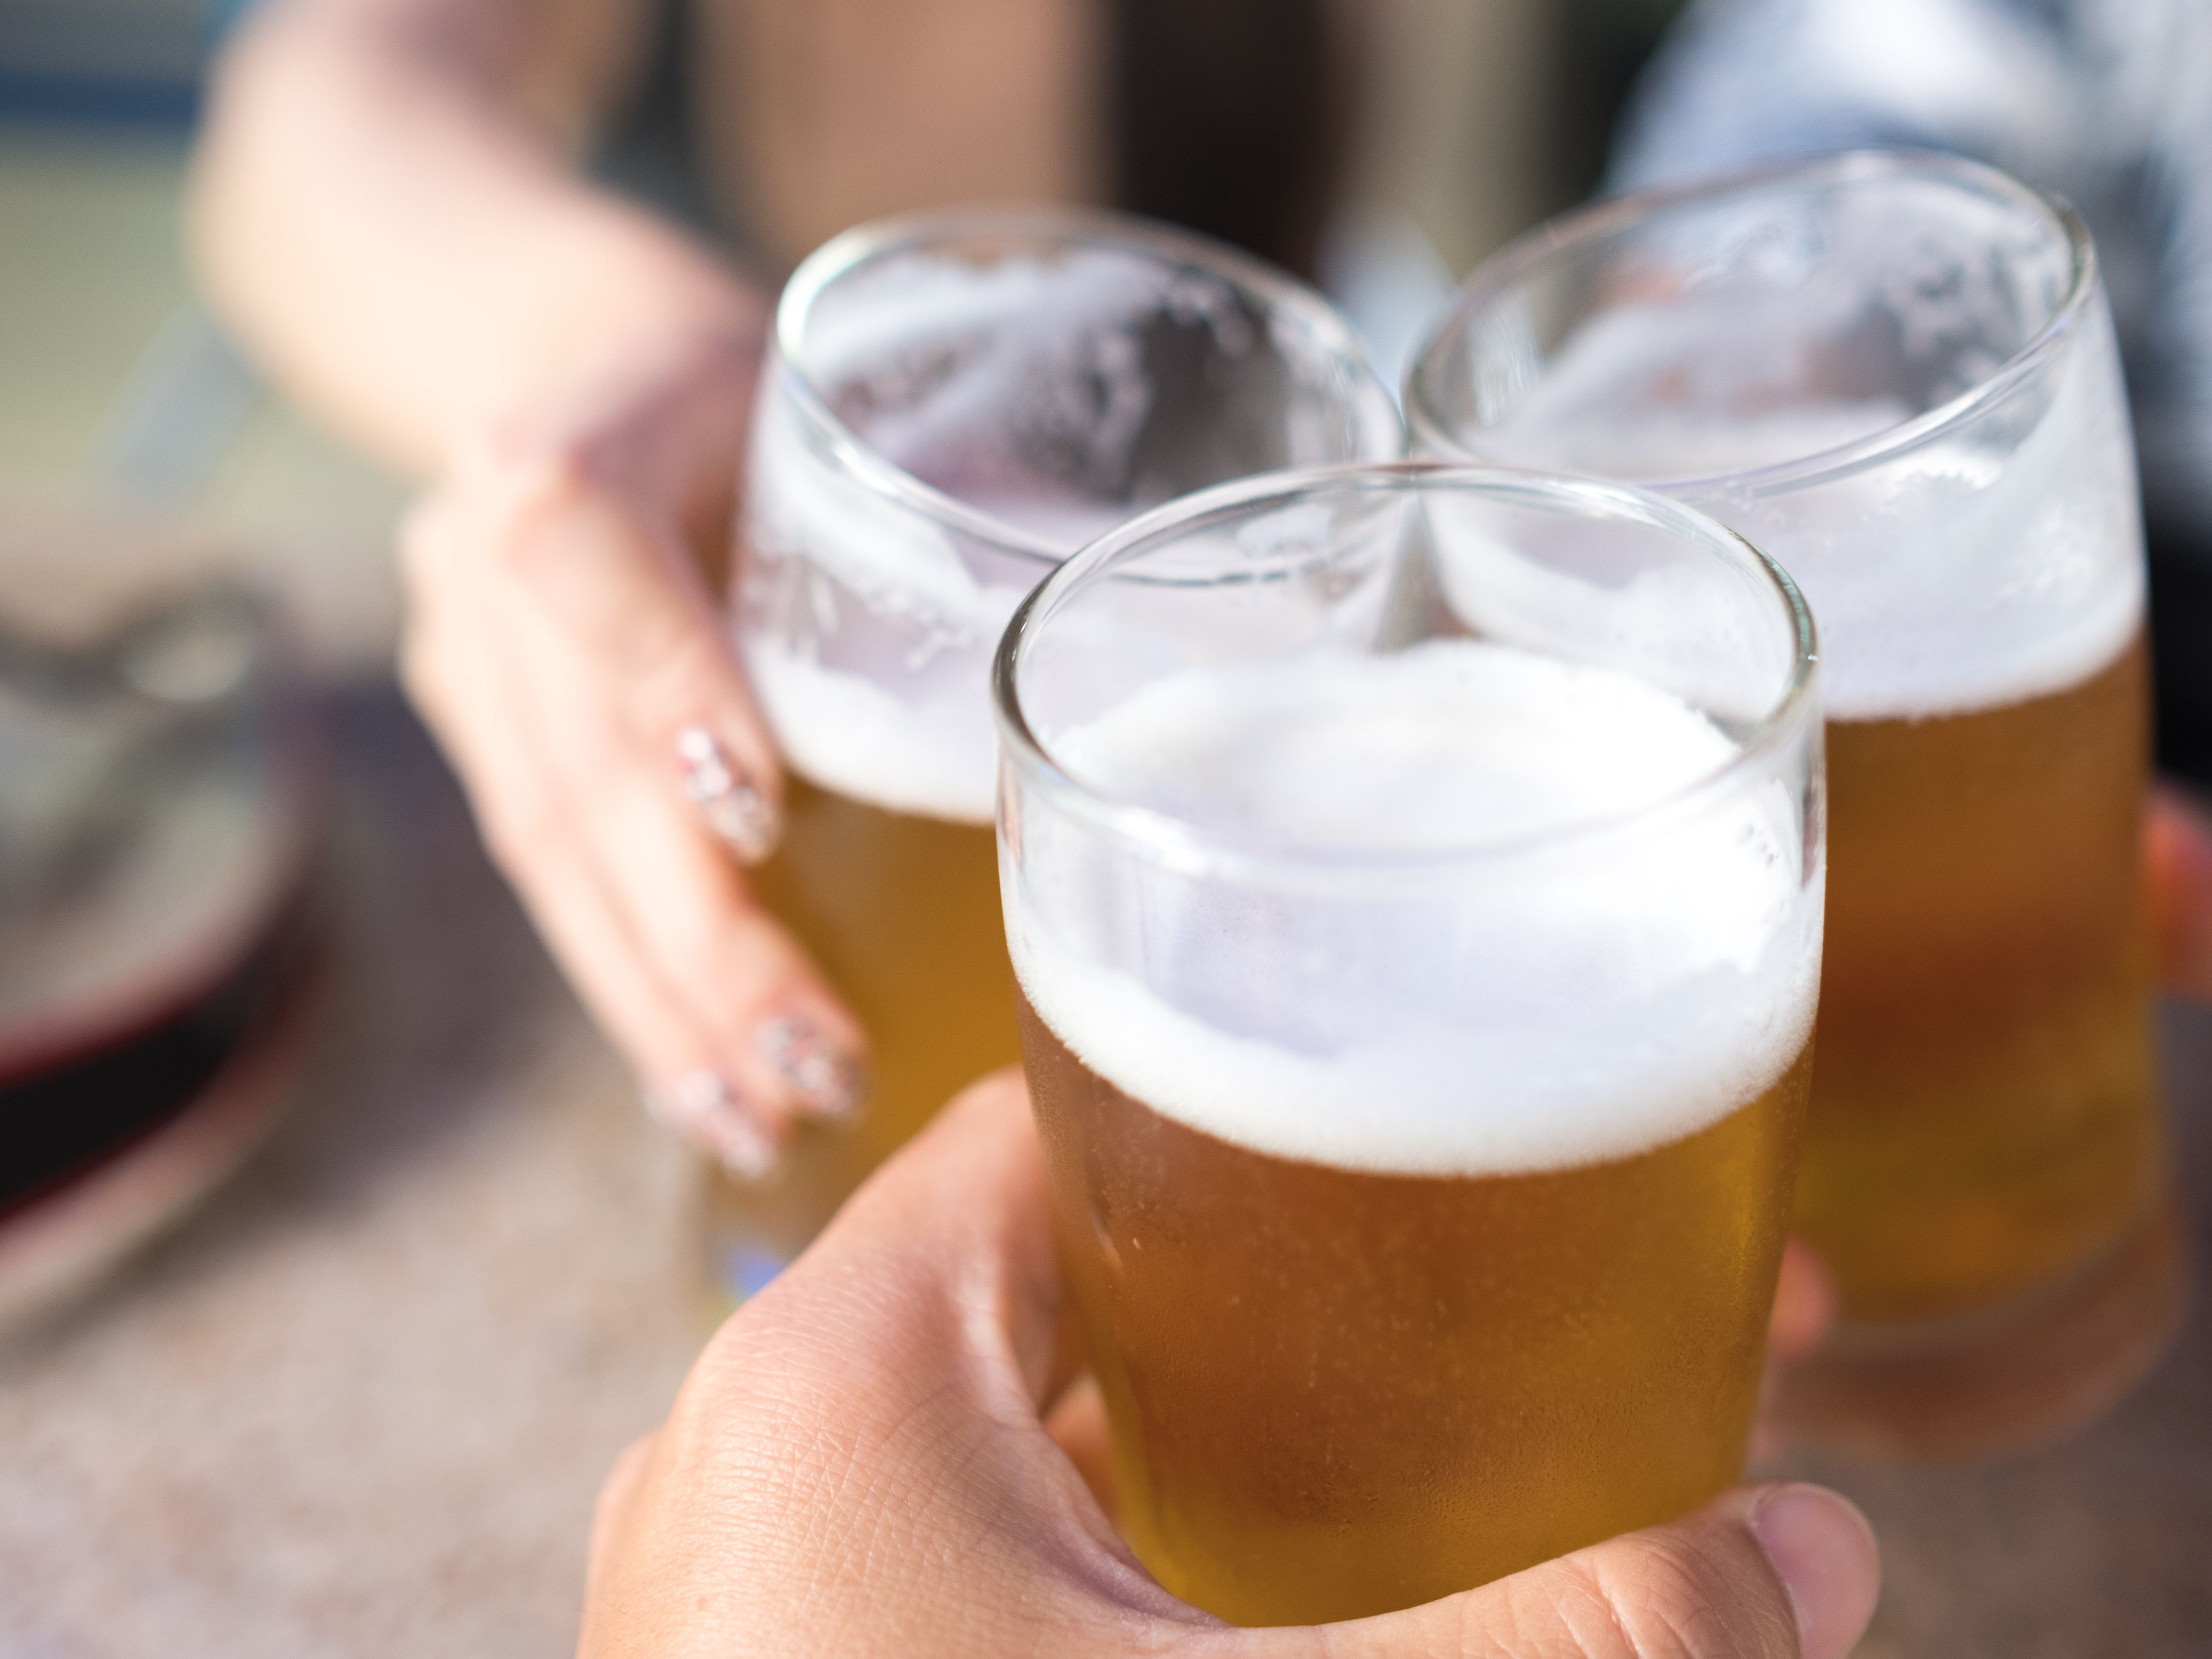 The 8 Best Beer Glasses of 2019